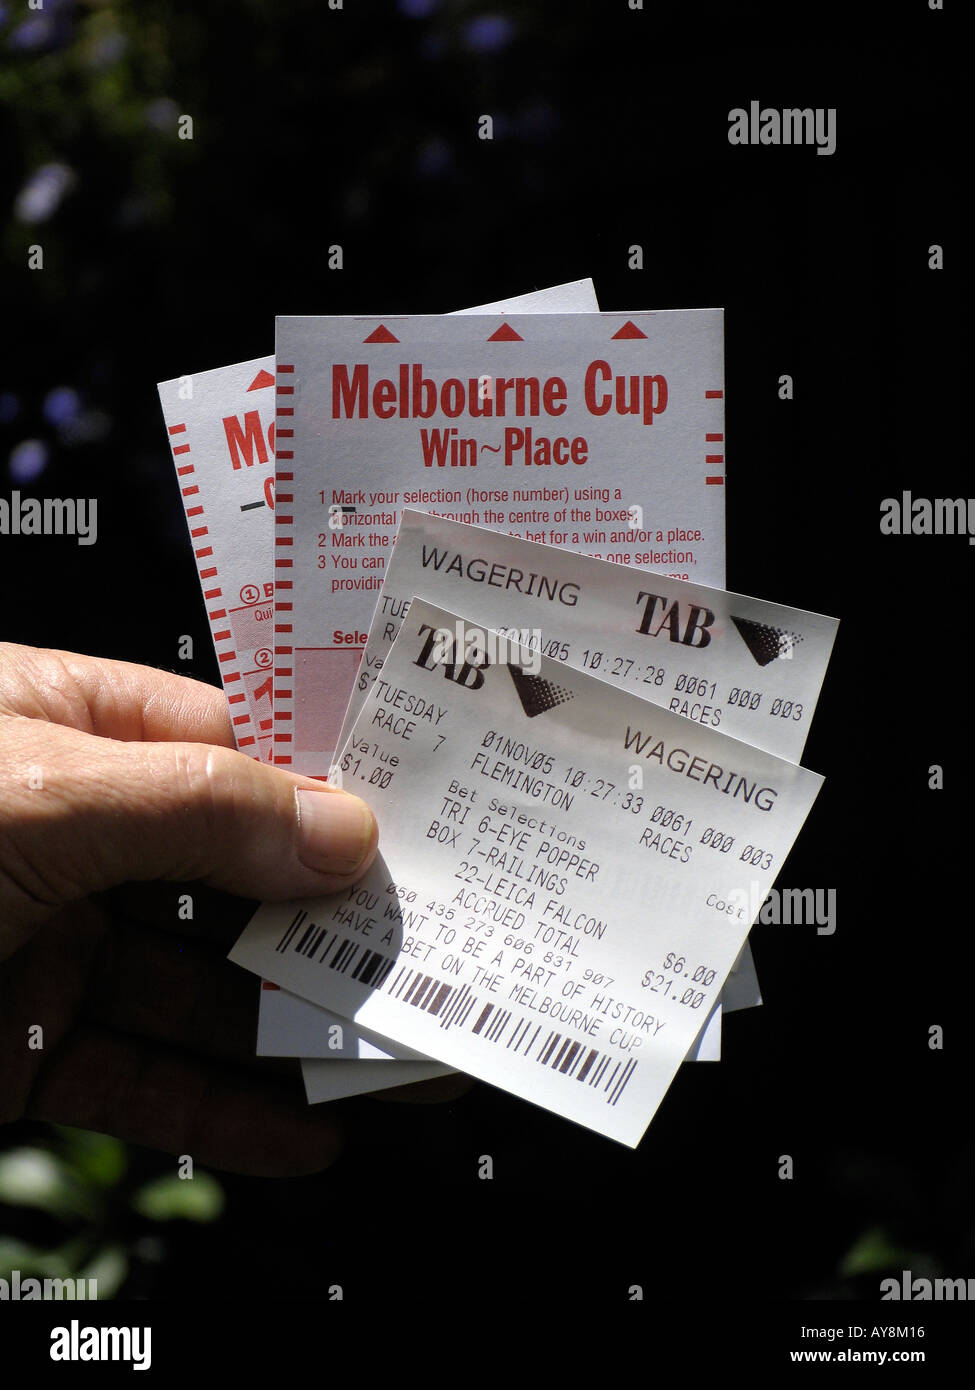 melbourne cup betting slip images